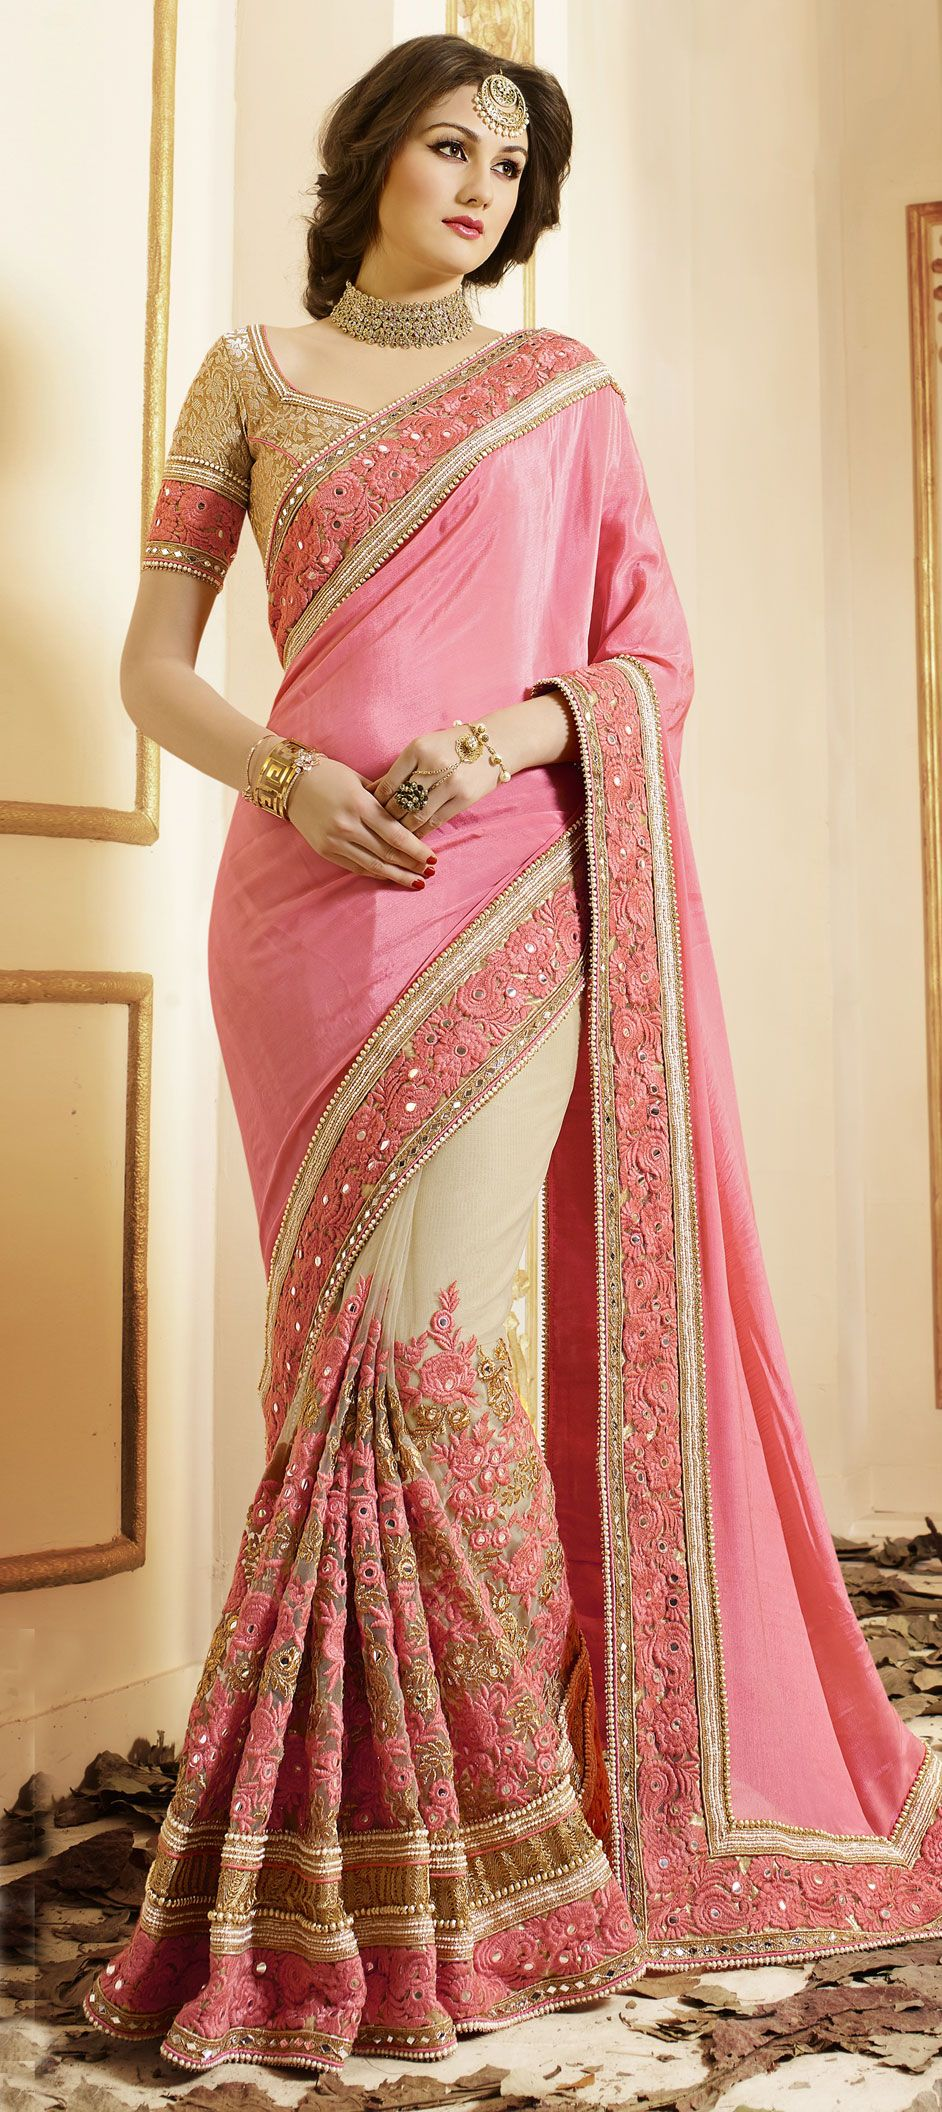 Beautiful pink and beige saree | d£$igπ£R $@R££ dR@pInG | Pinterest